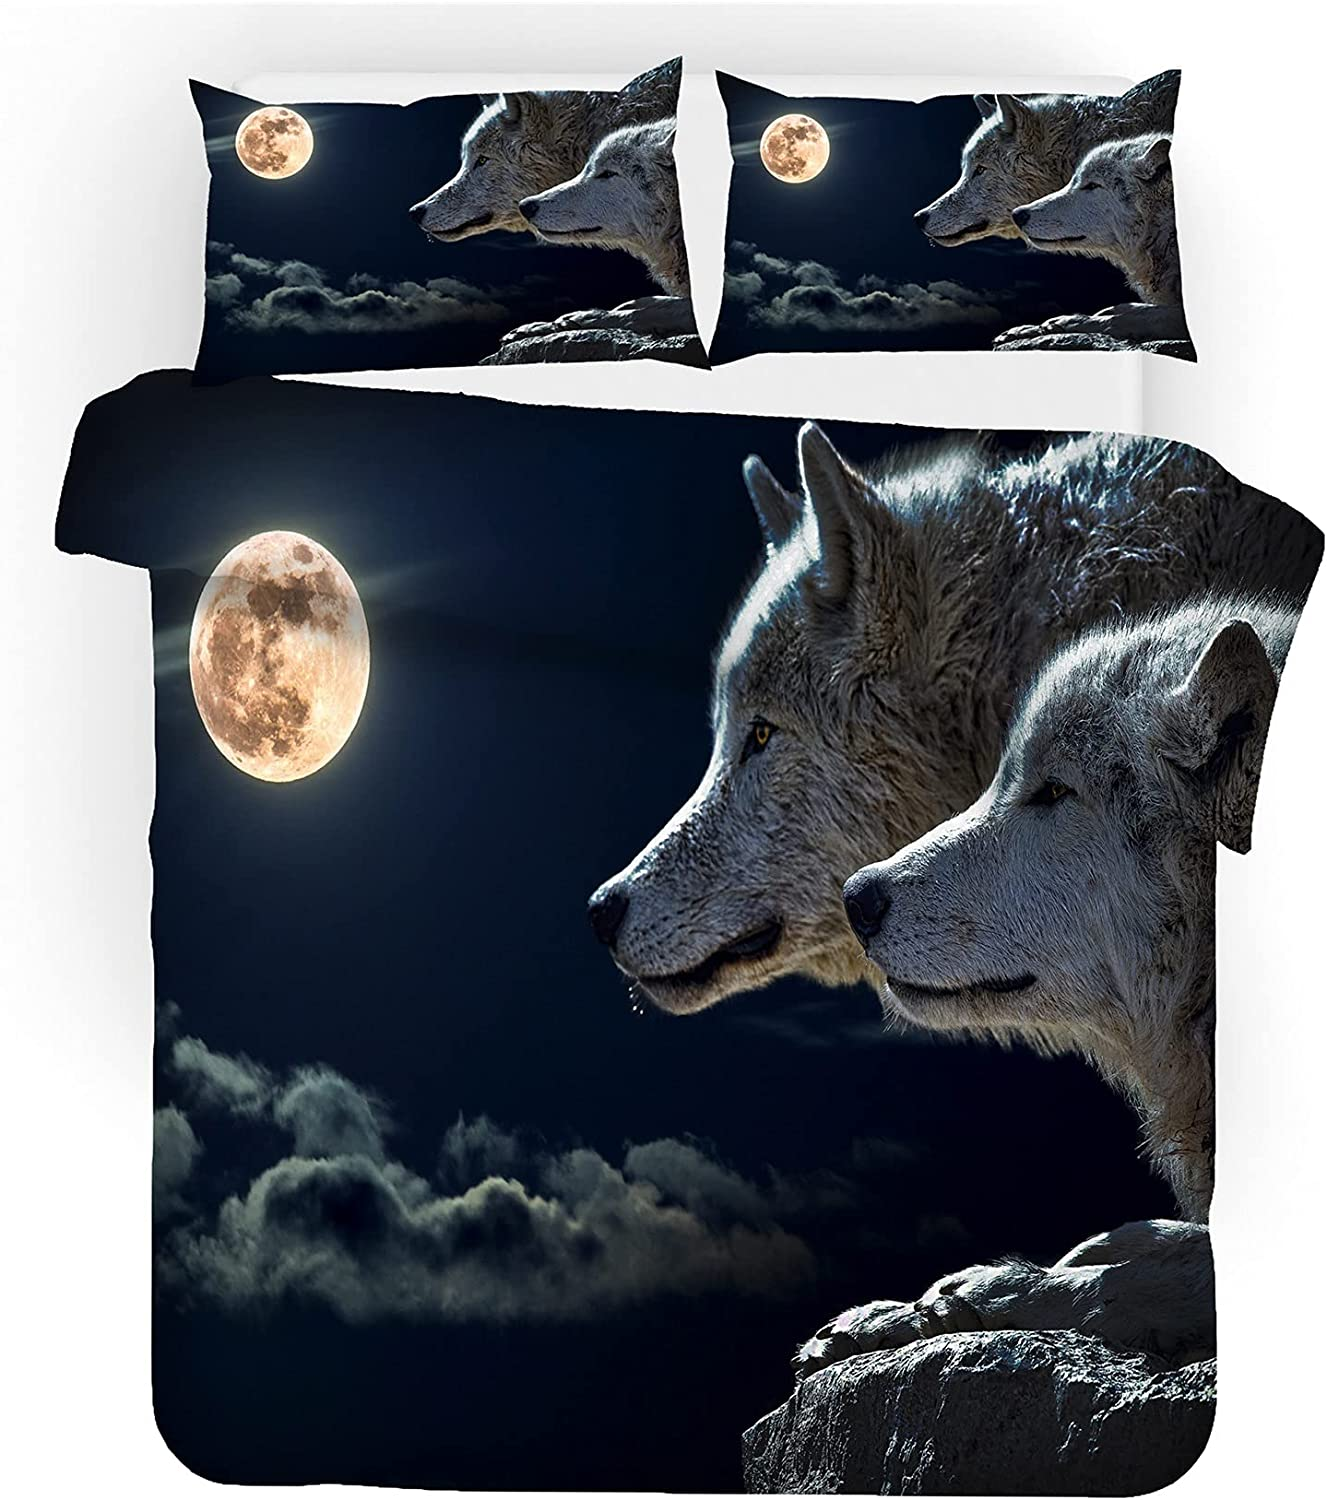 NGLWA Teenager's latest Quilt Low price Set Bed Bag in Theme Bedding Wolf